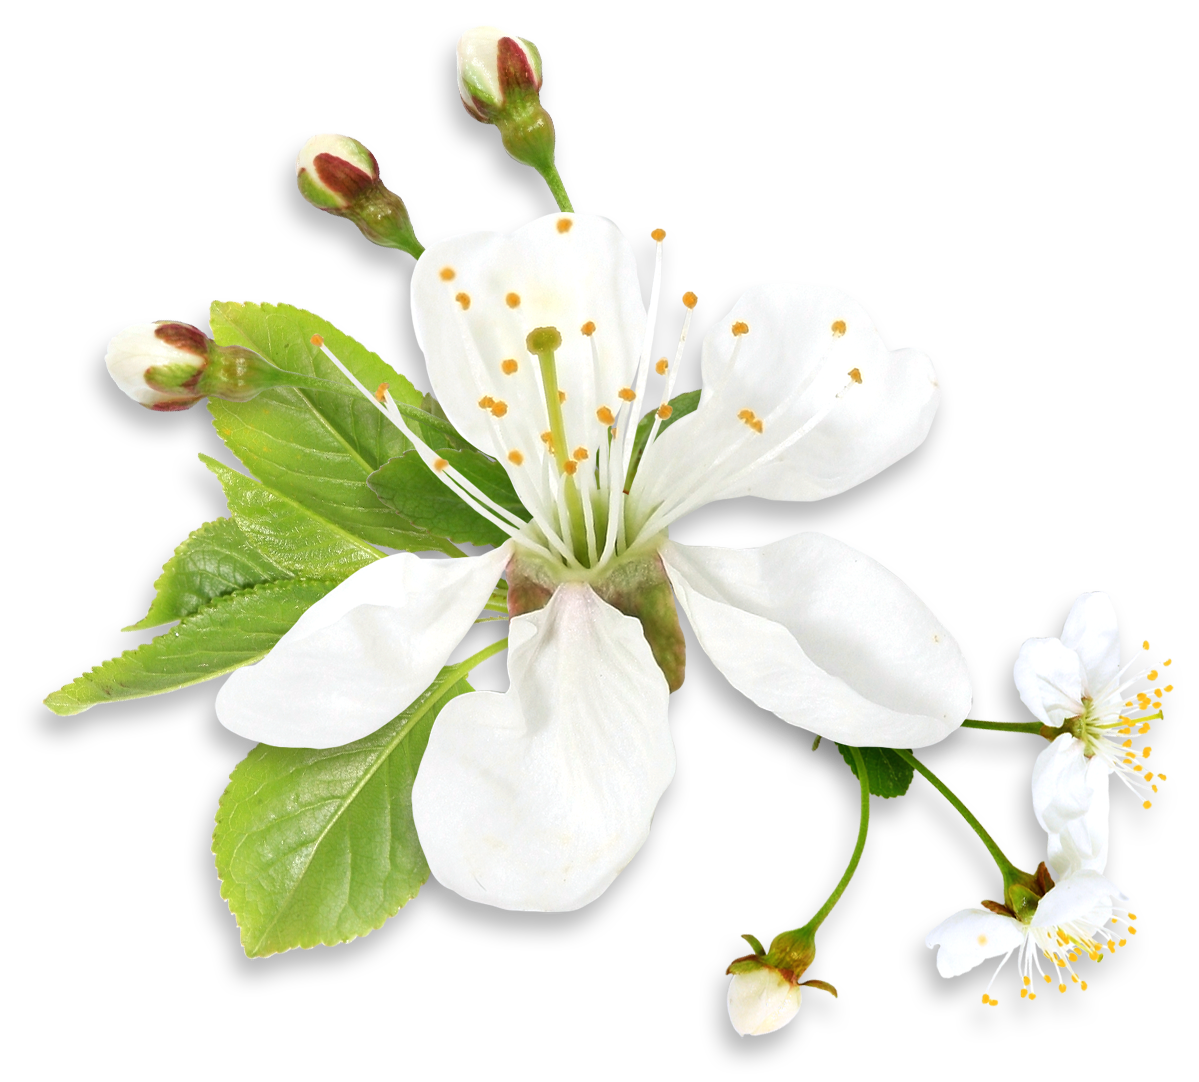 Spring flowers png. White tree flower clipart